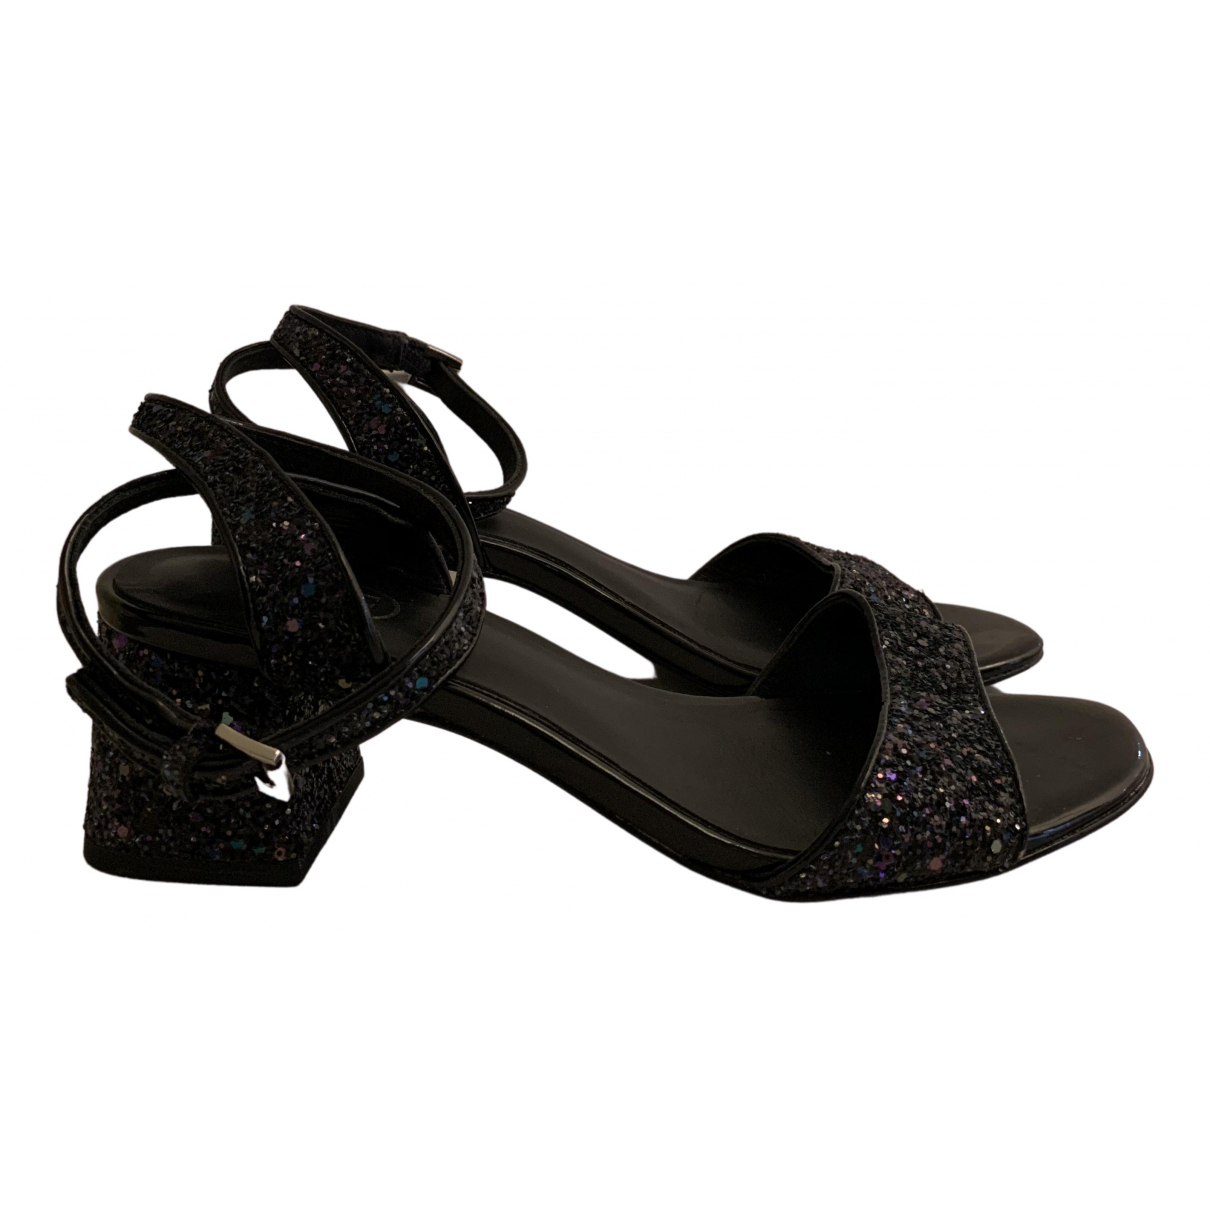 Ash N Black Leather Sandals for Women 37 IT